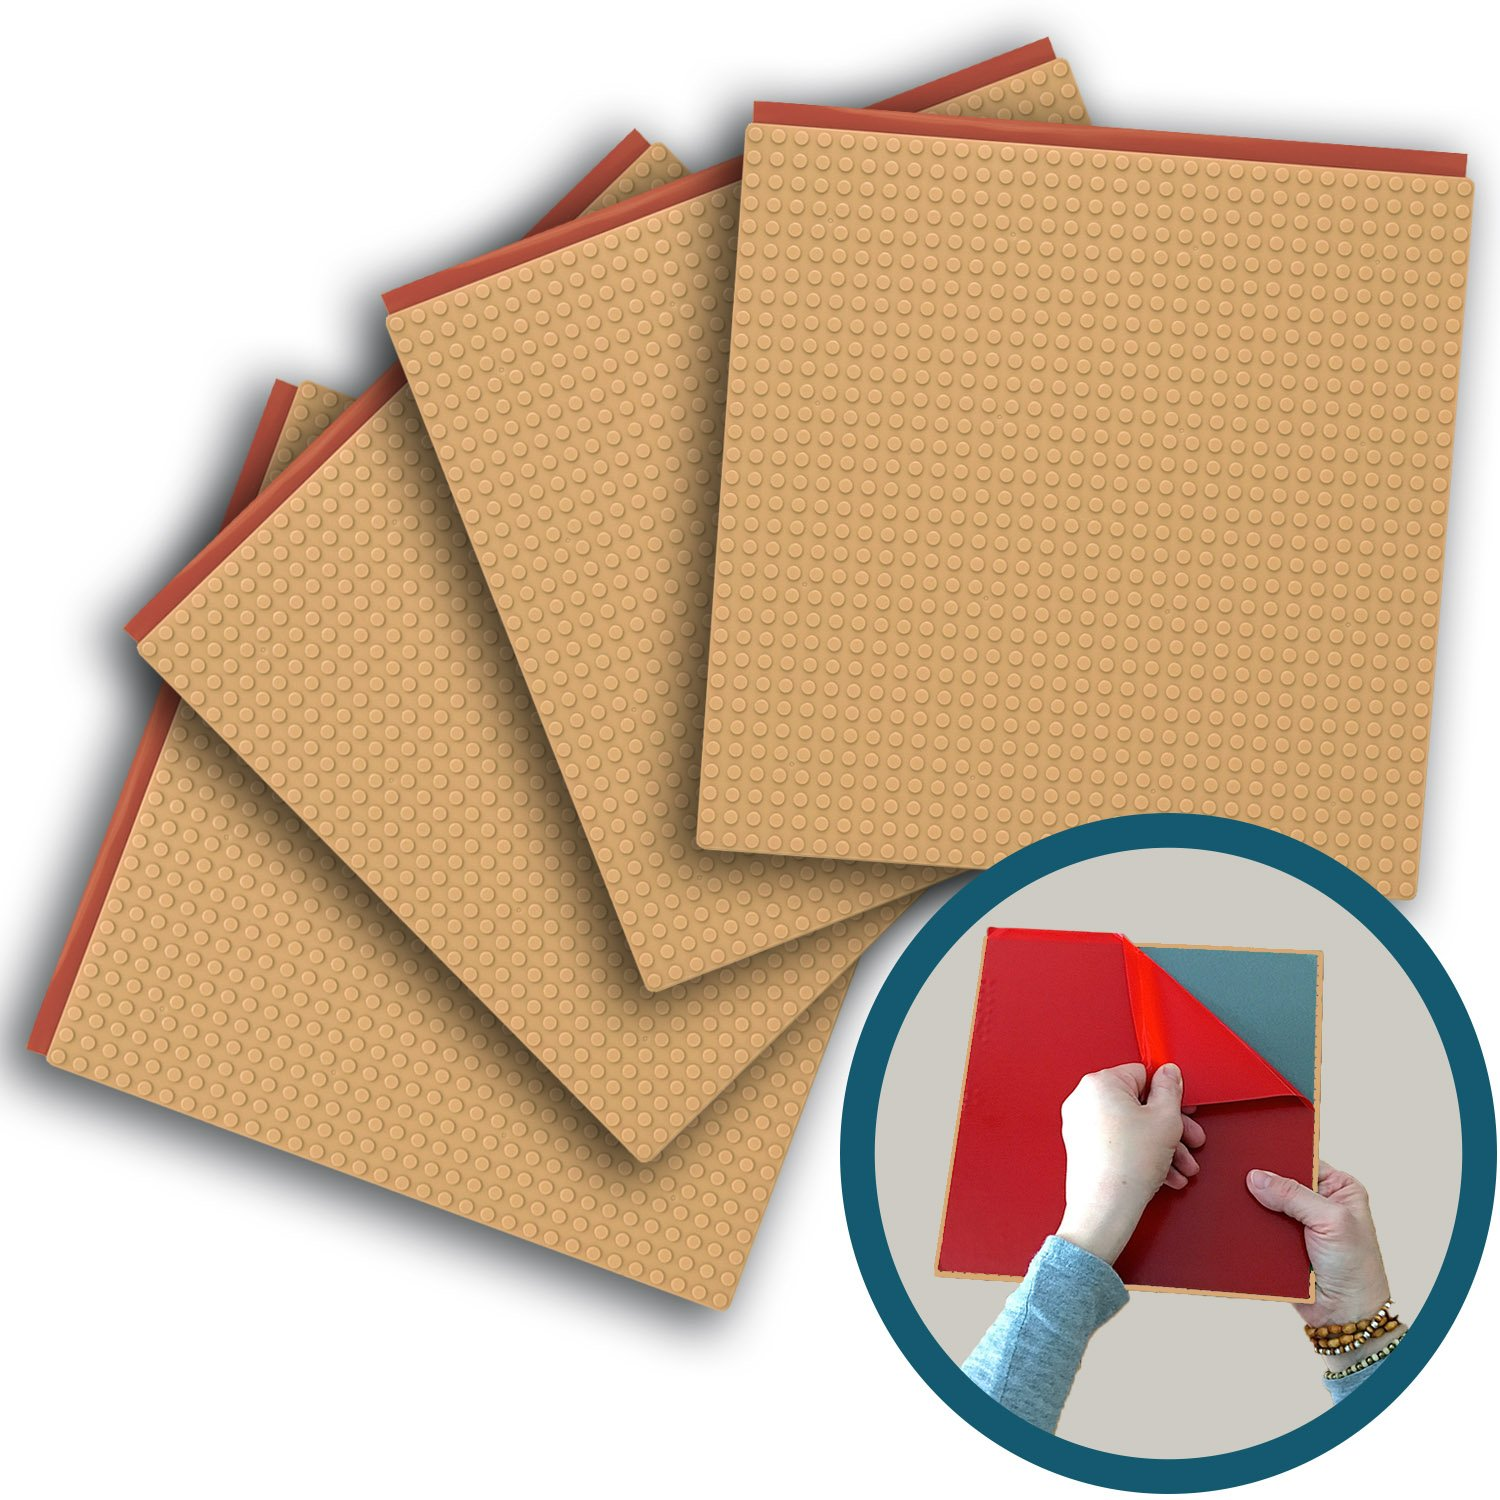 Peel-and-stick Baseplates - Self Adhesive Building Brick Plates - Compatible With All Major Brands - 4 Pack - Tan - 10 Inch X 10 Inch - By Creative Qt